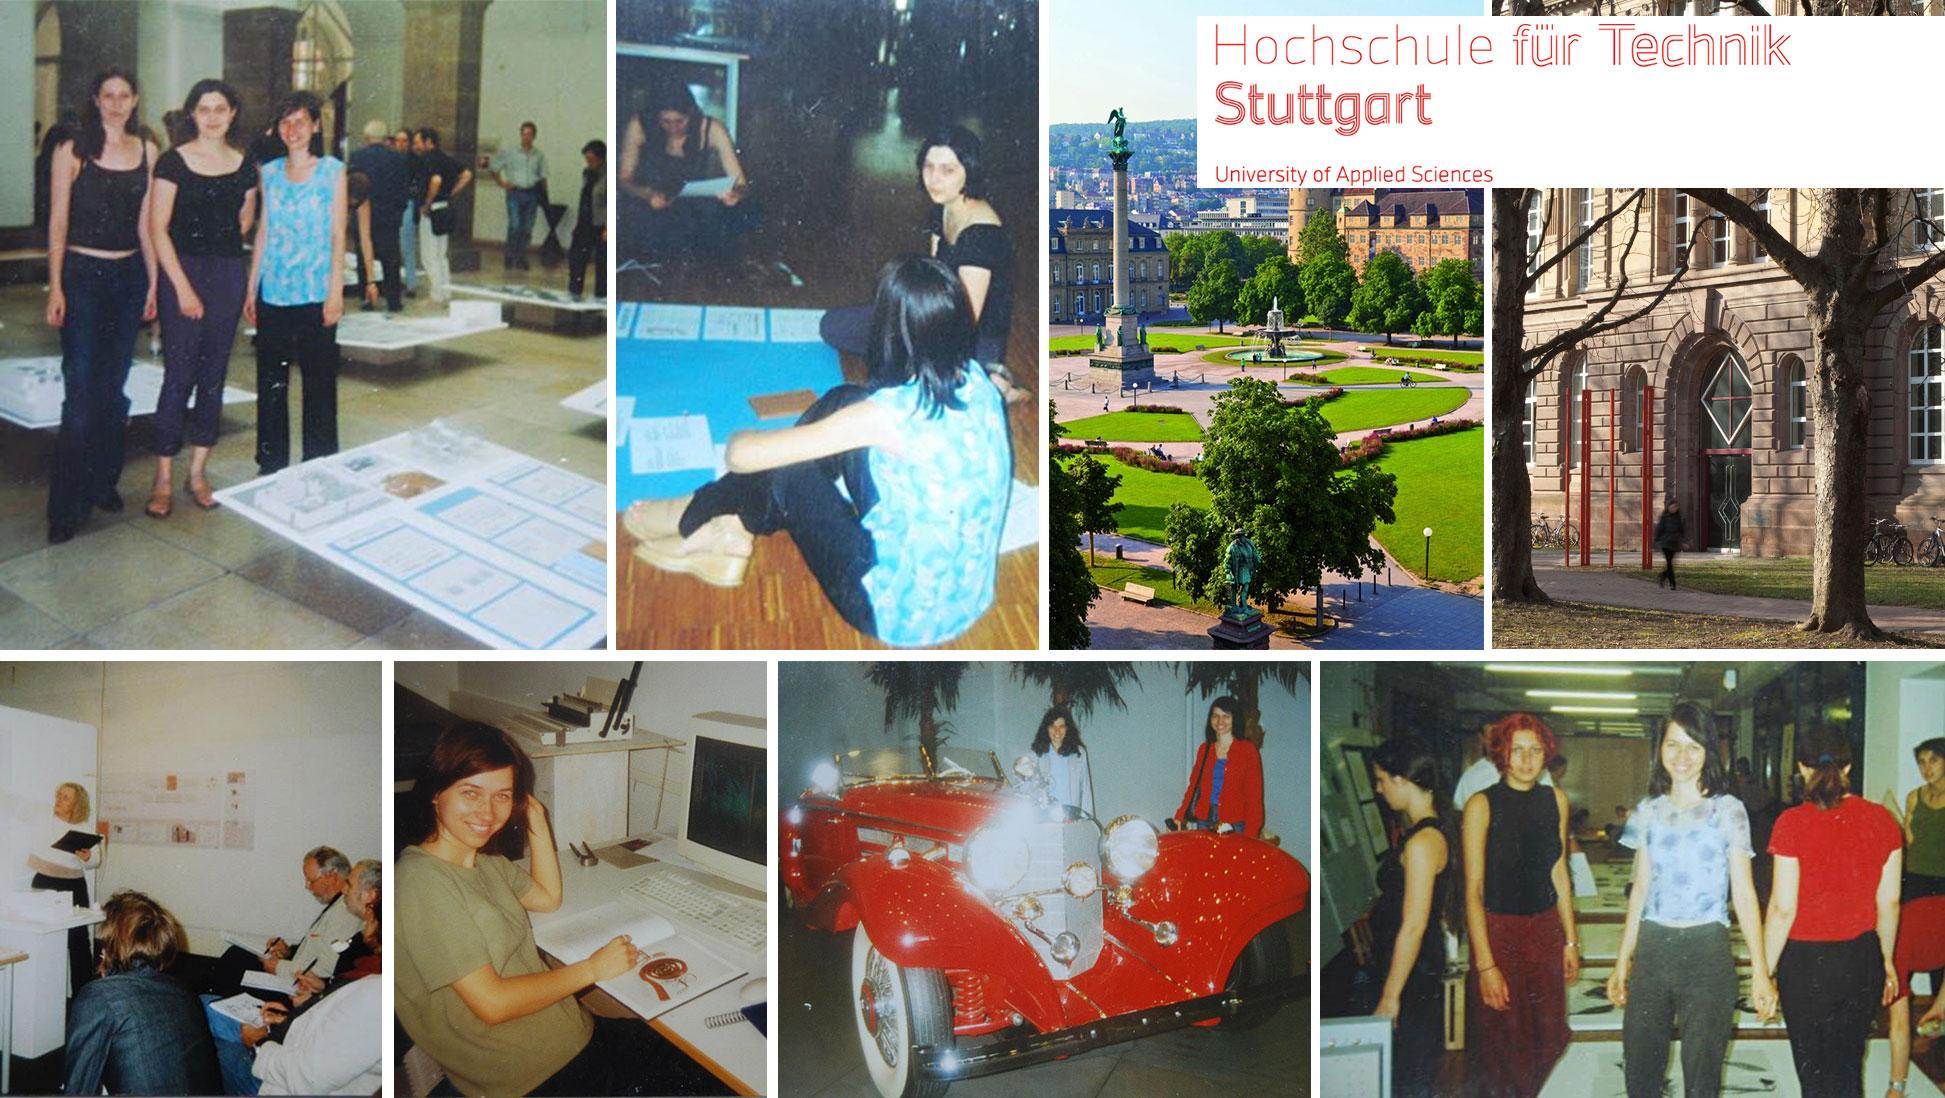 University of Applied Sciences, Stuttgart, Germany